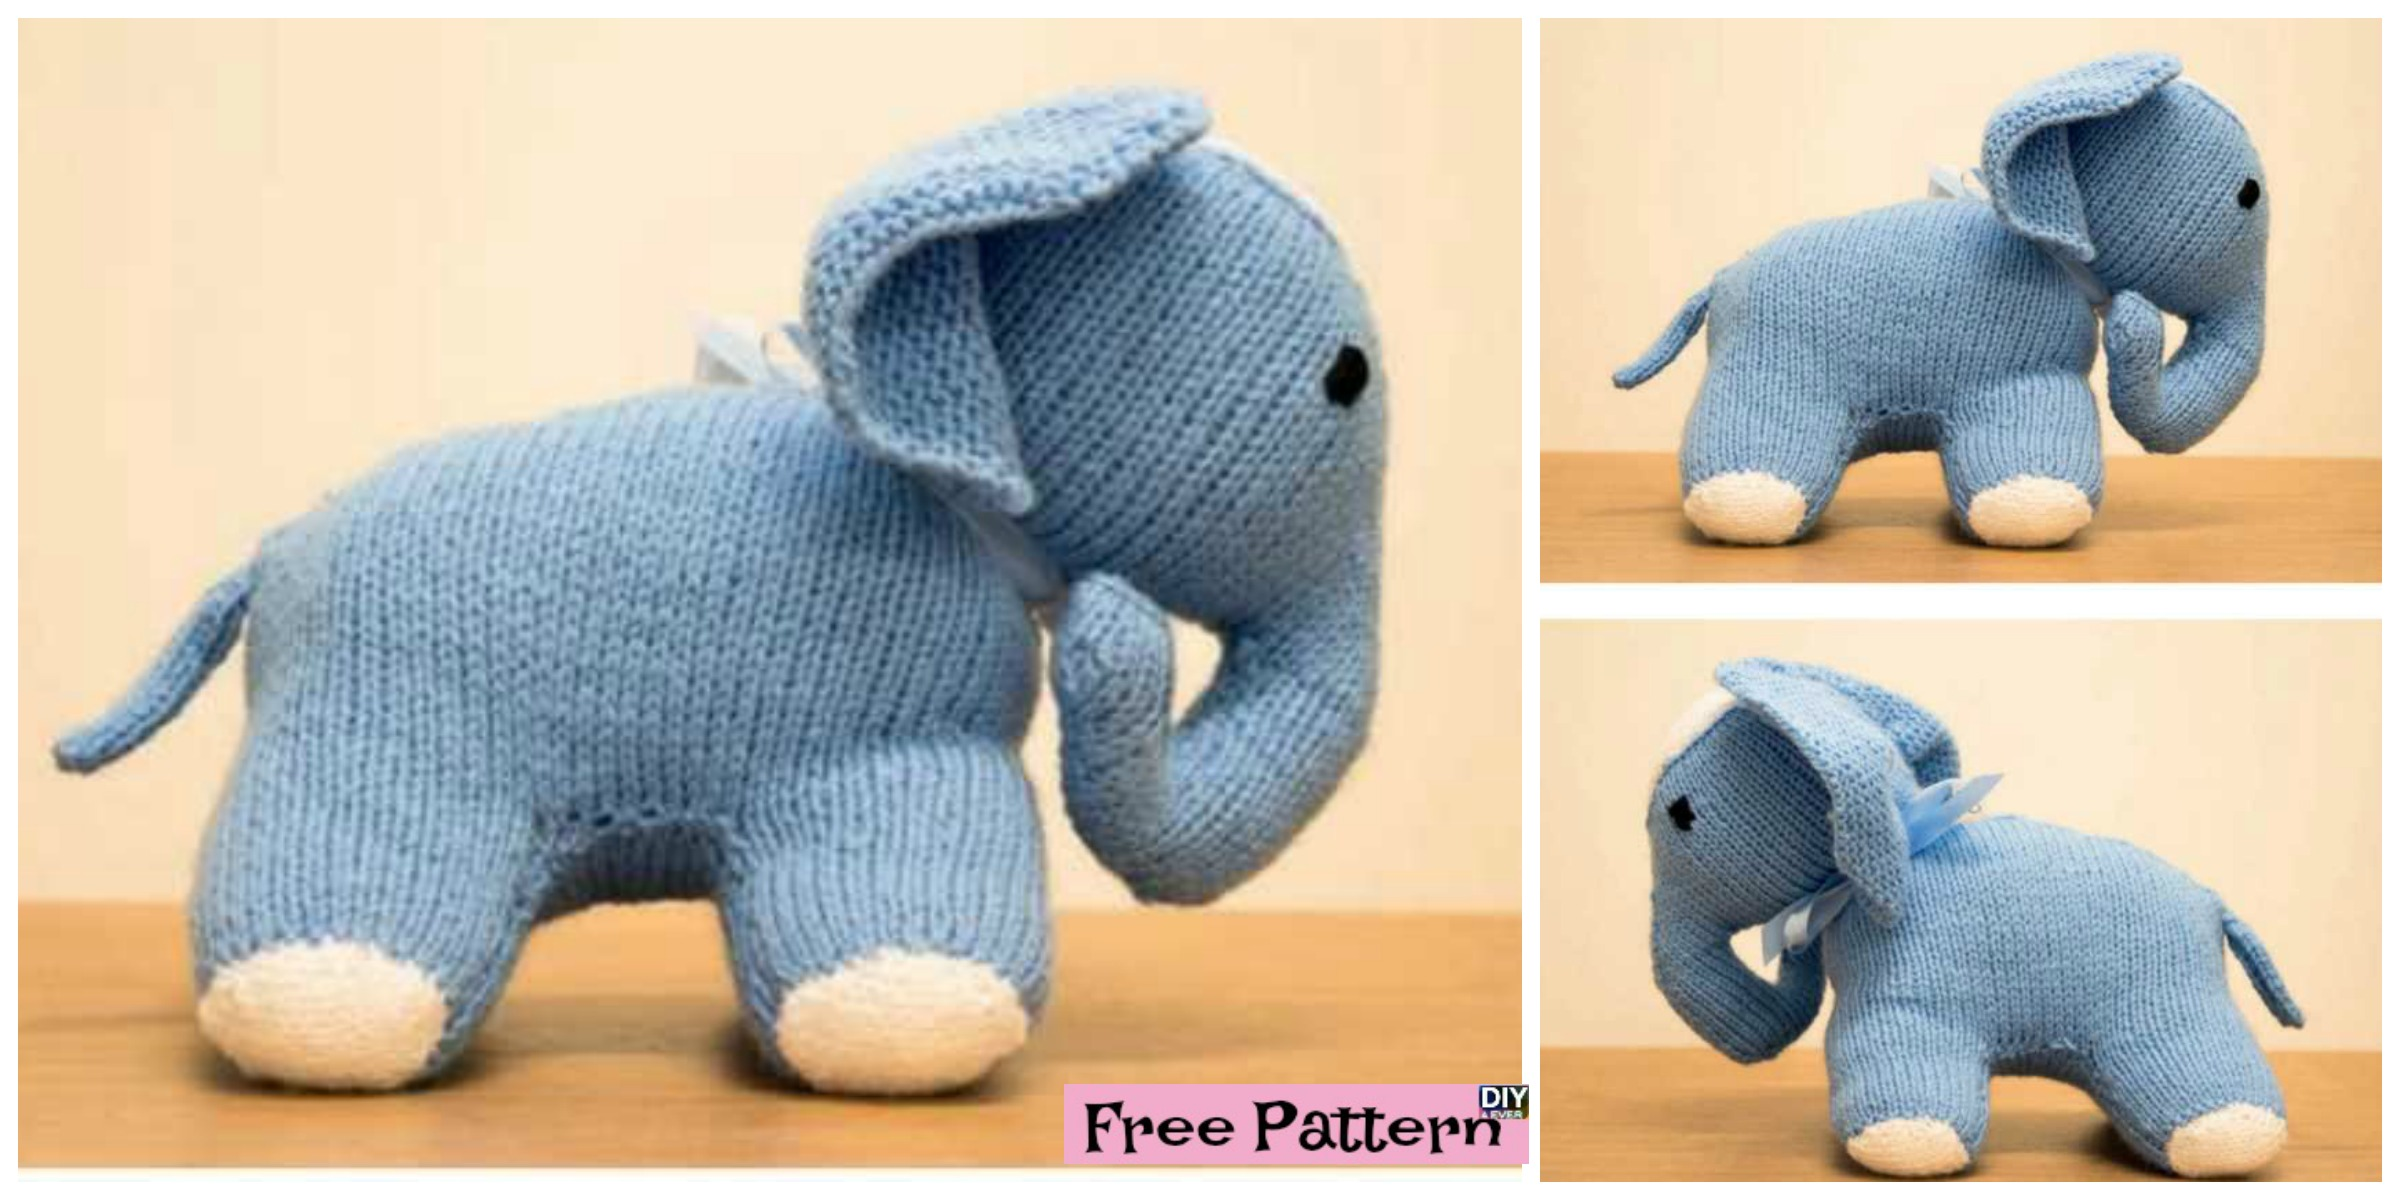 The Sweetest Crochet Elephant Patterns To Try | The WHOot | 1200x2400